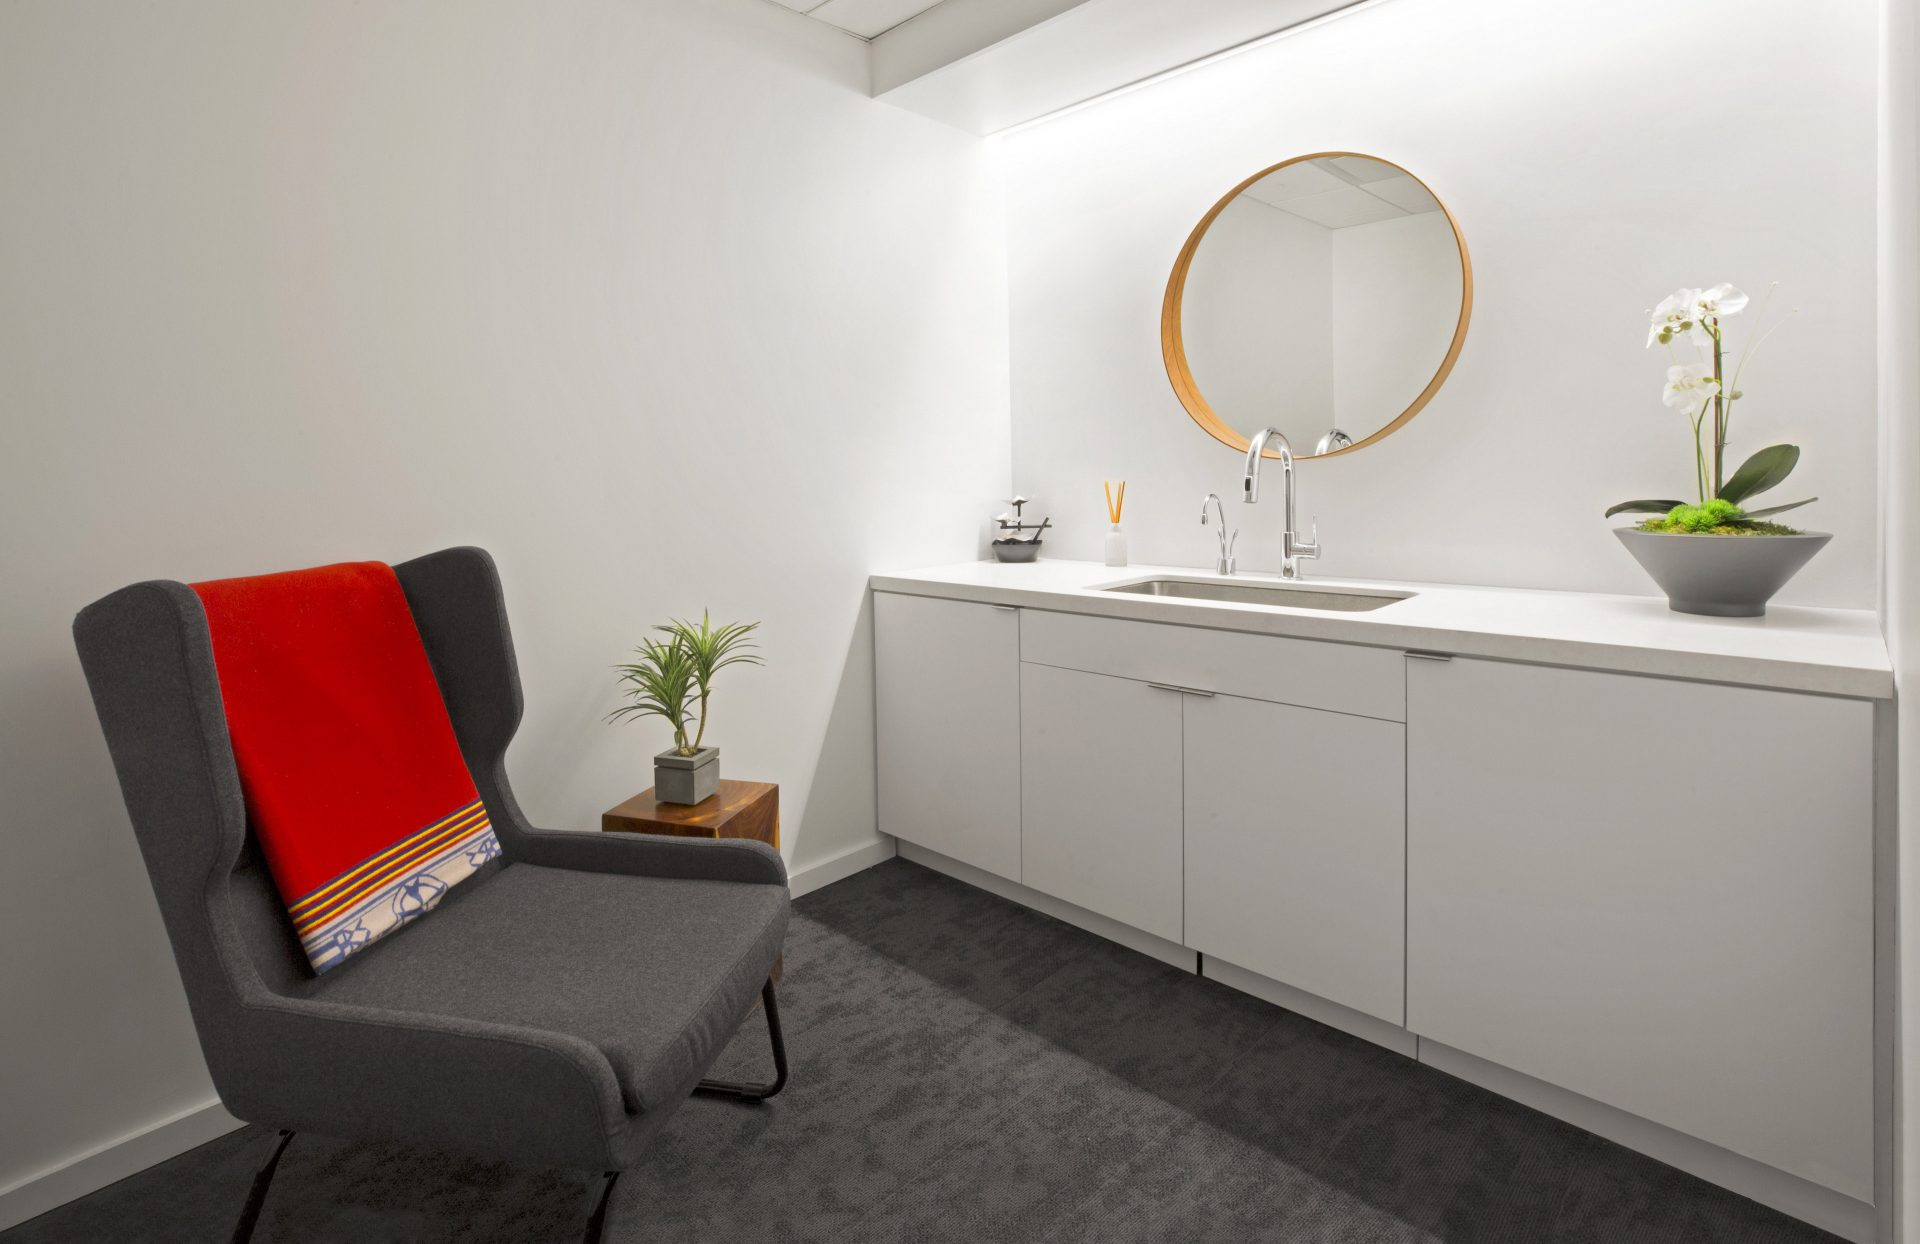 Wellness room at the new CNY Group Headquarters